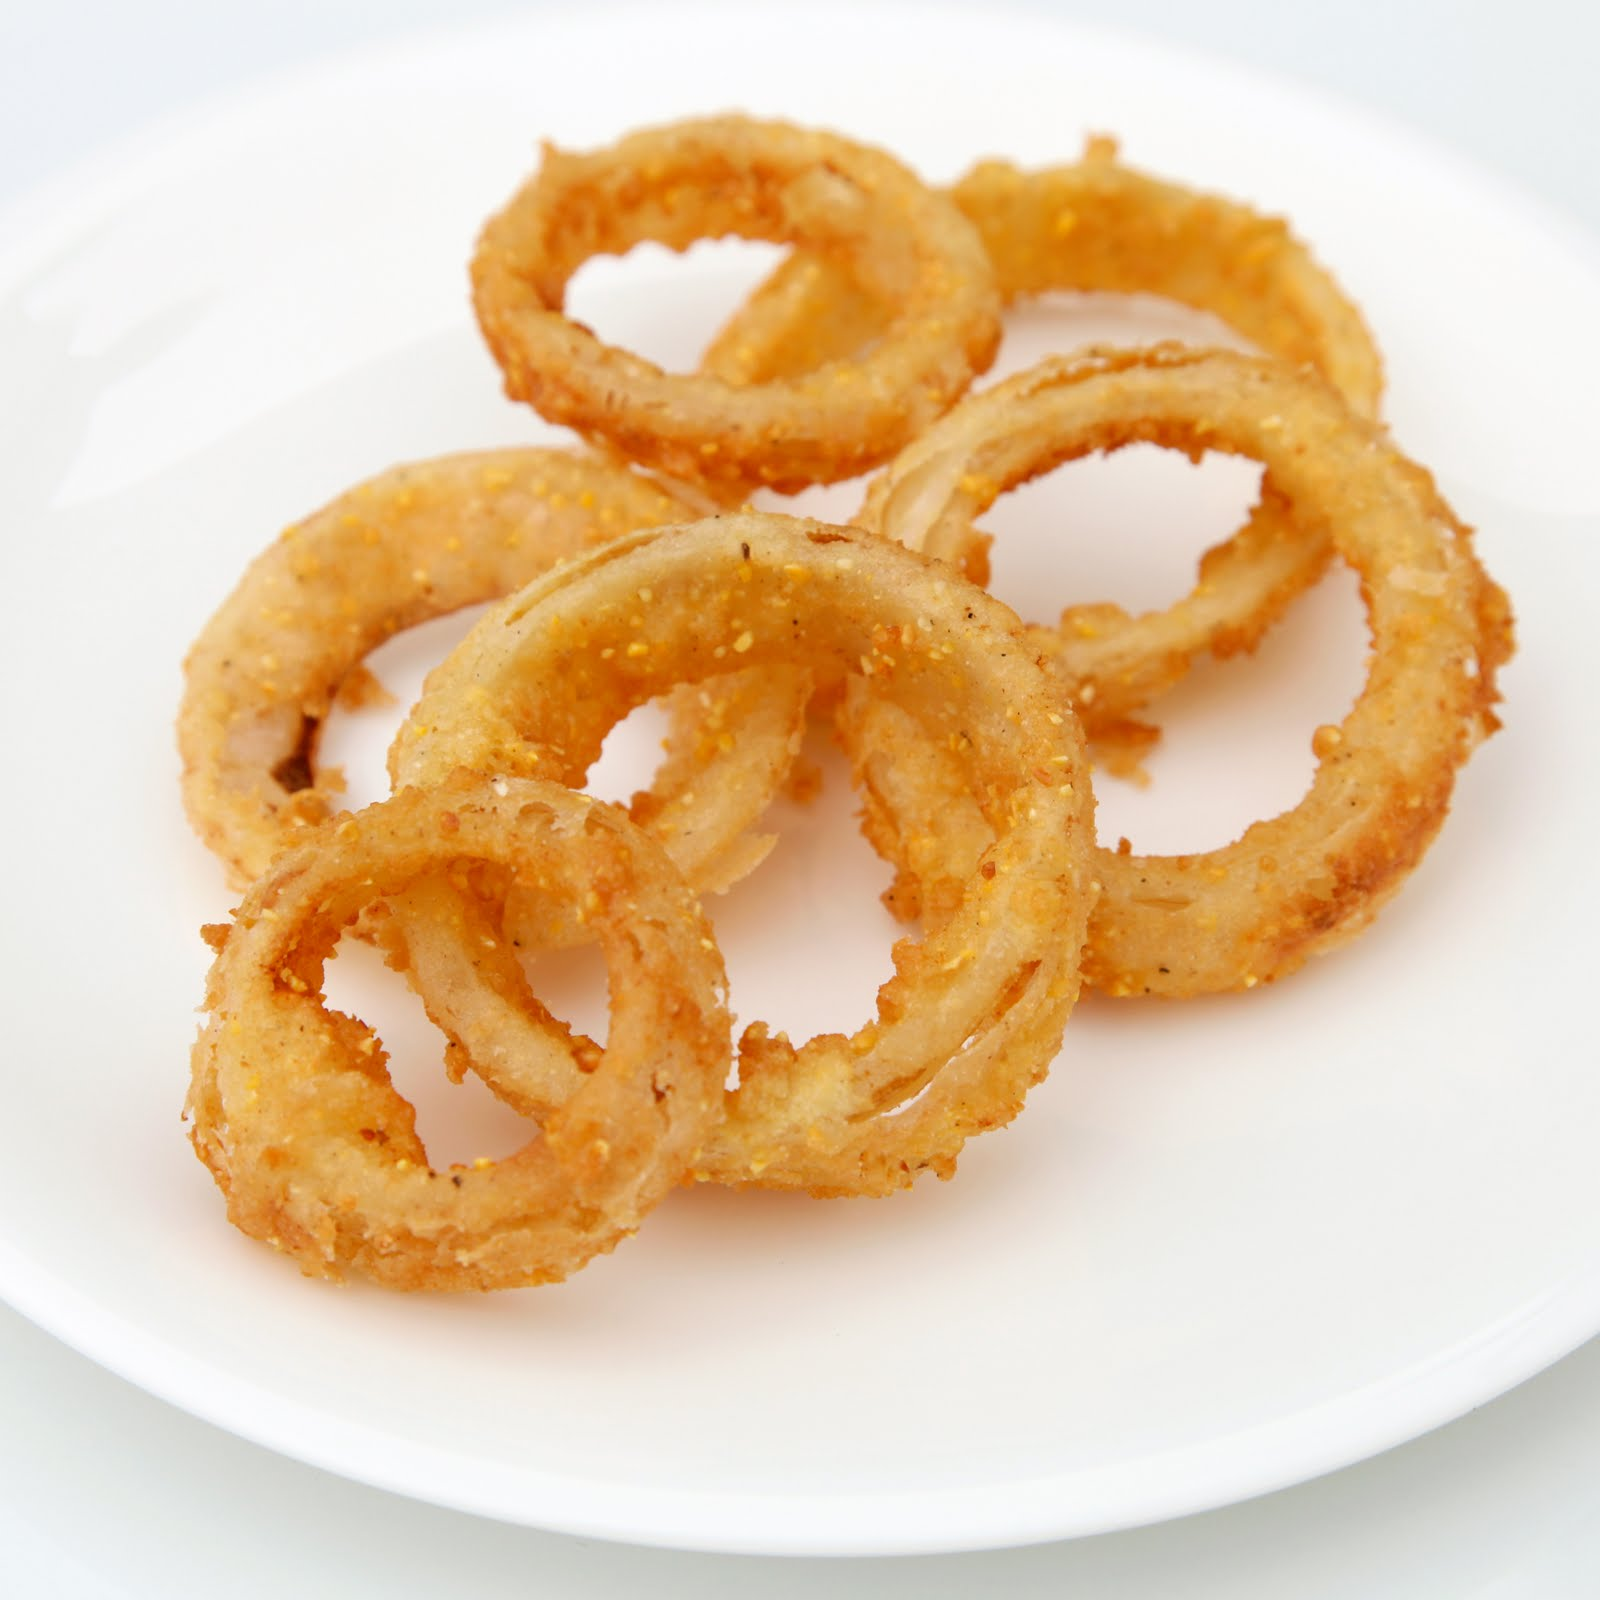 The 10 cent Diet: Gluten Free Onion Rings!